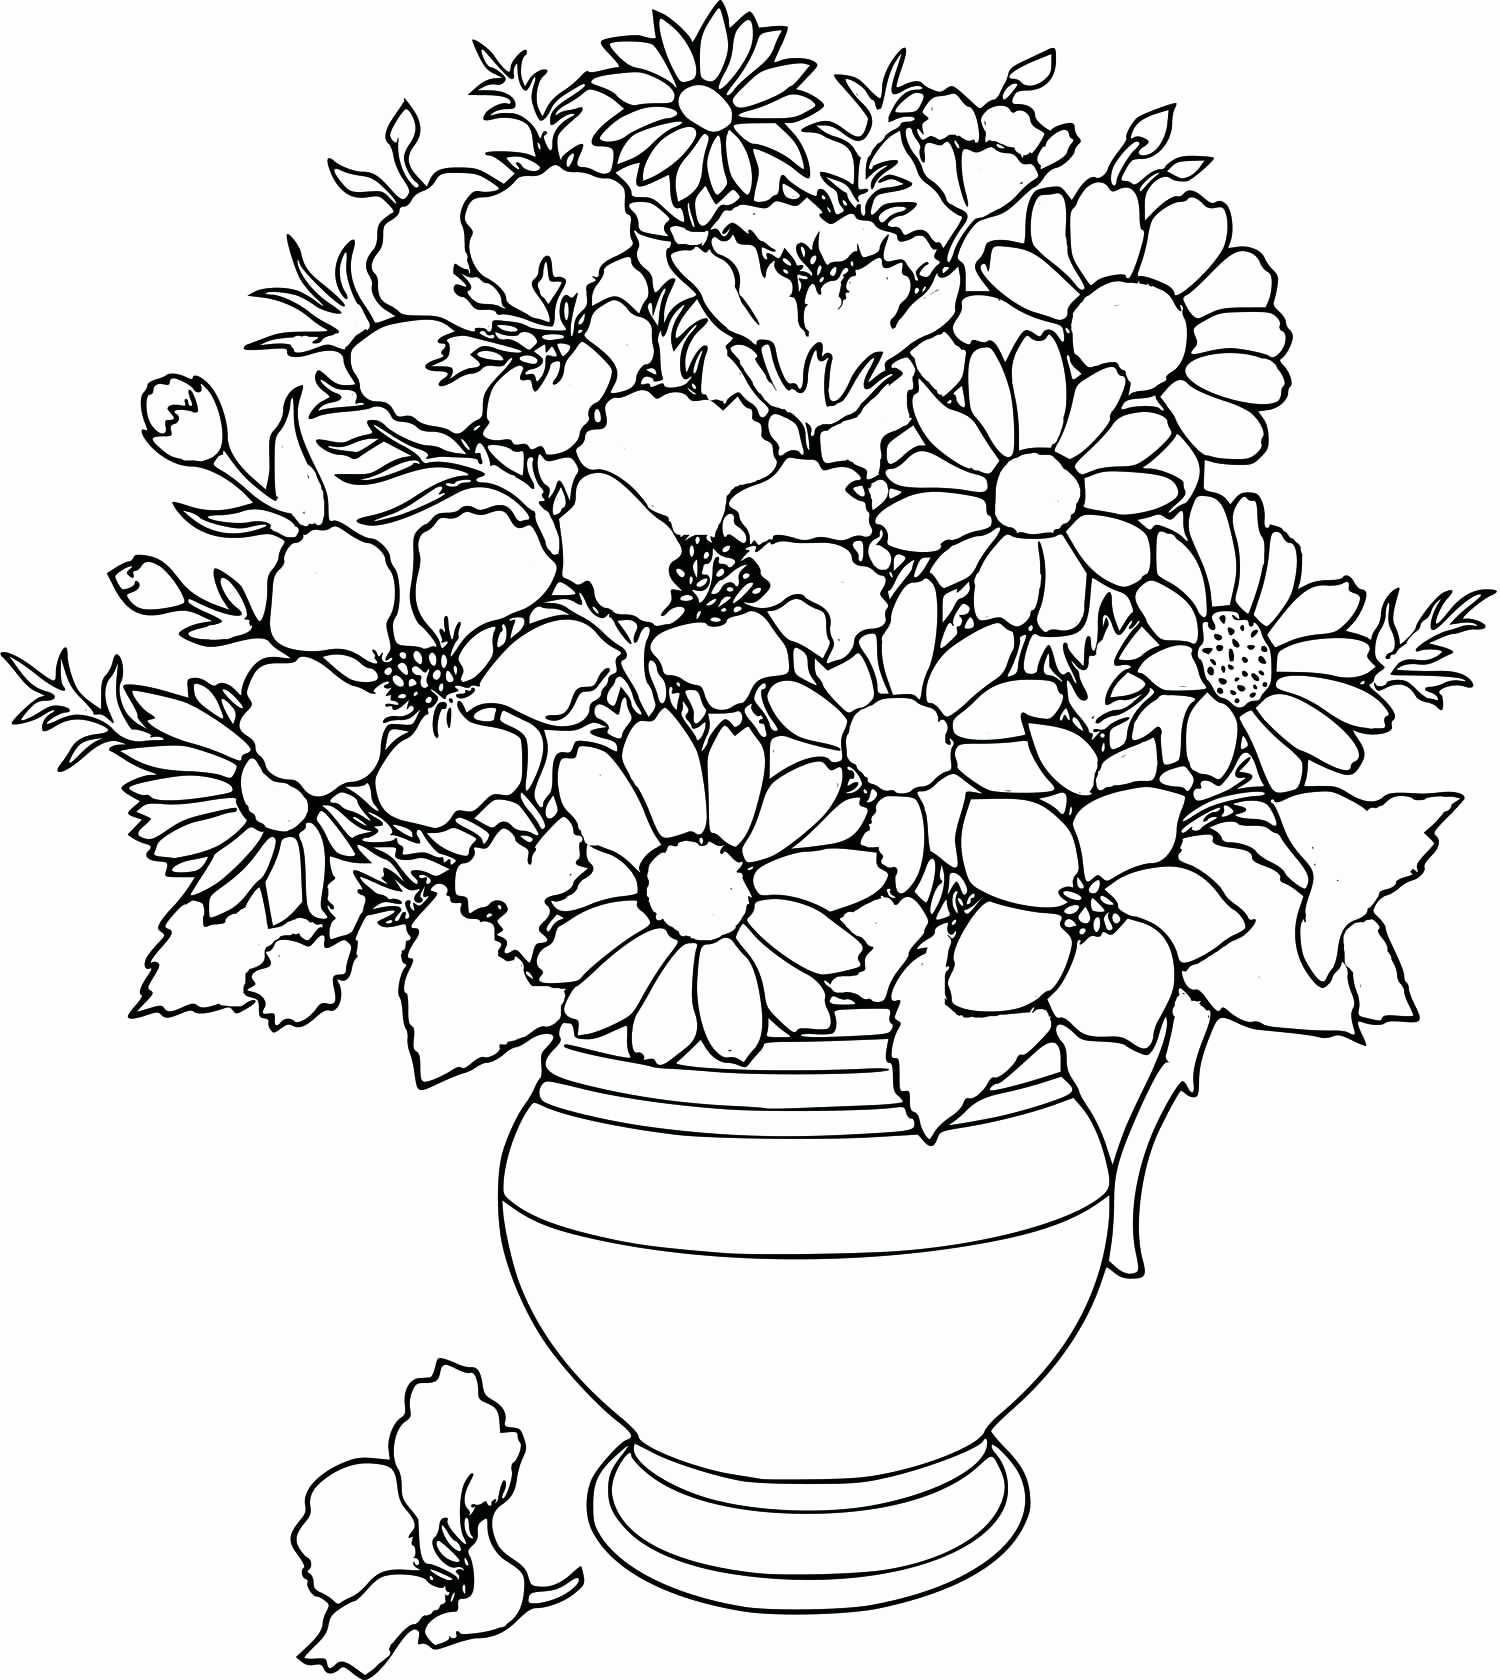 1500x1680 Coloring Pages Free For Kids Lovely Flowers Coloring Pages Print